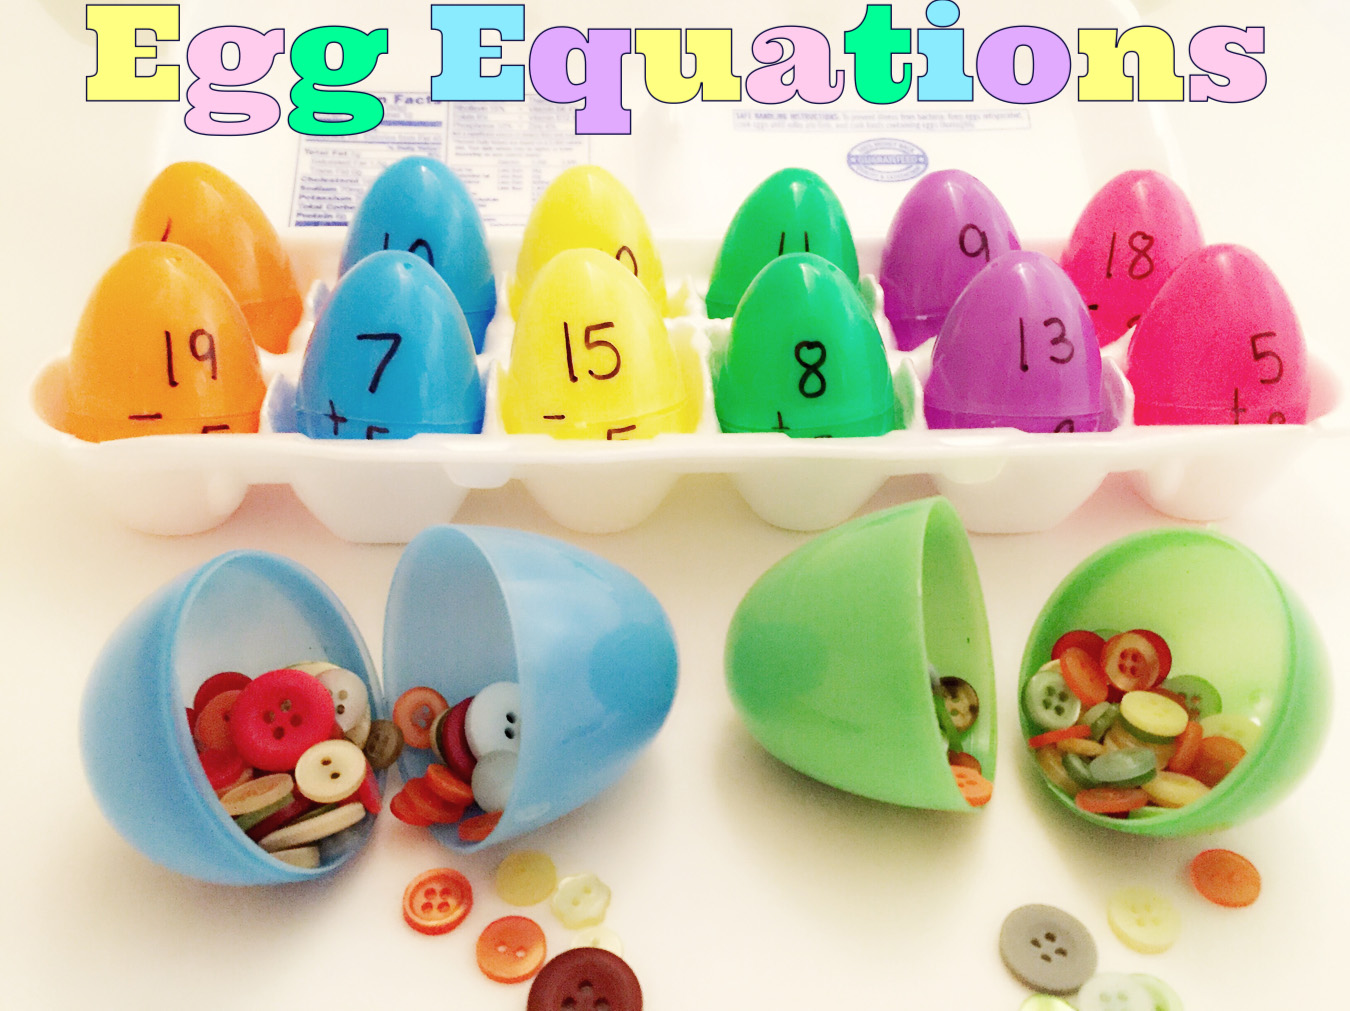 Plastic eggs with addition and subtraction problems on them